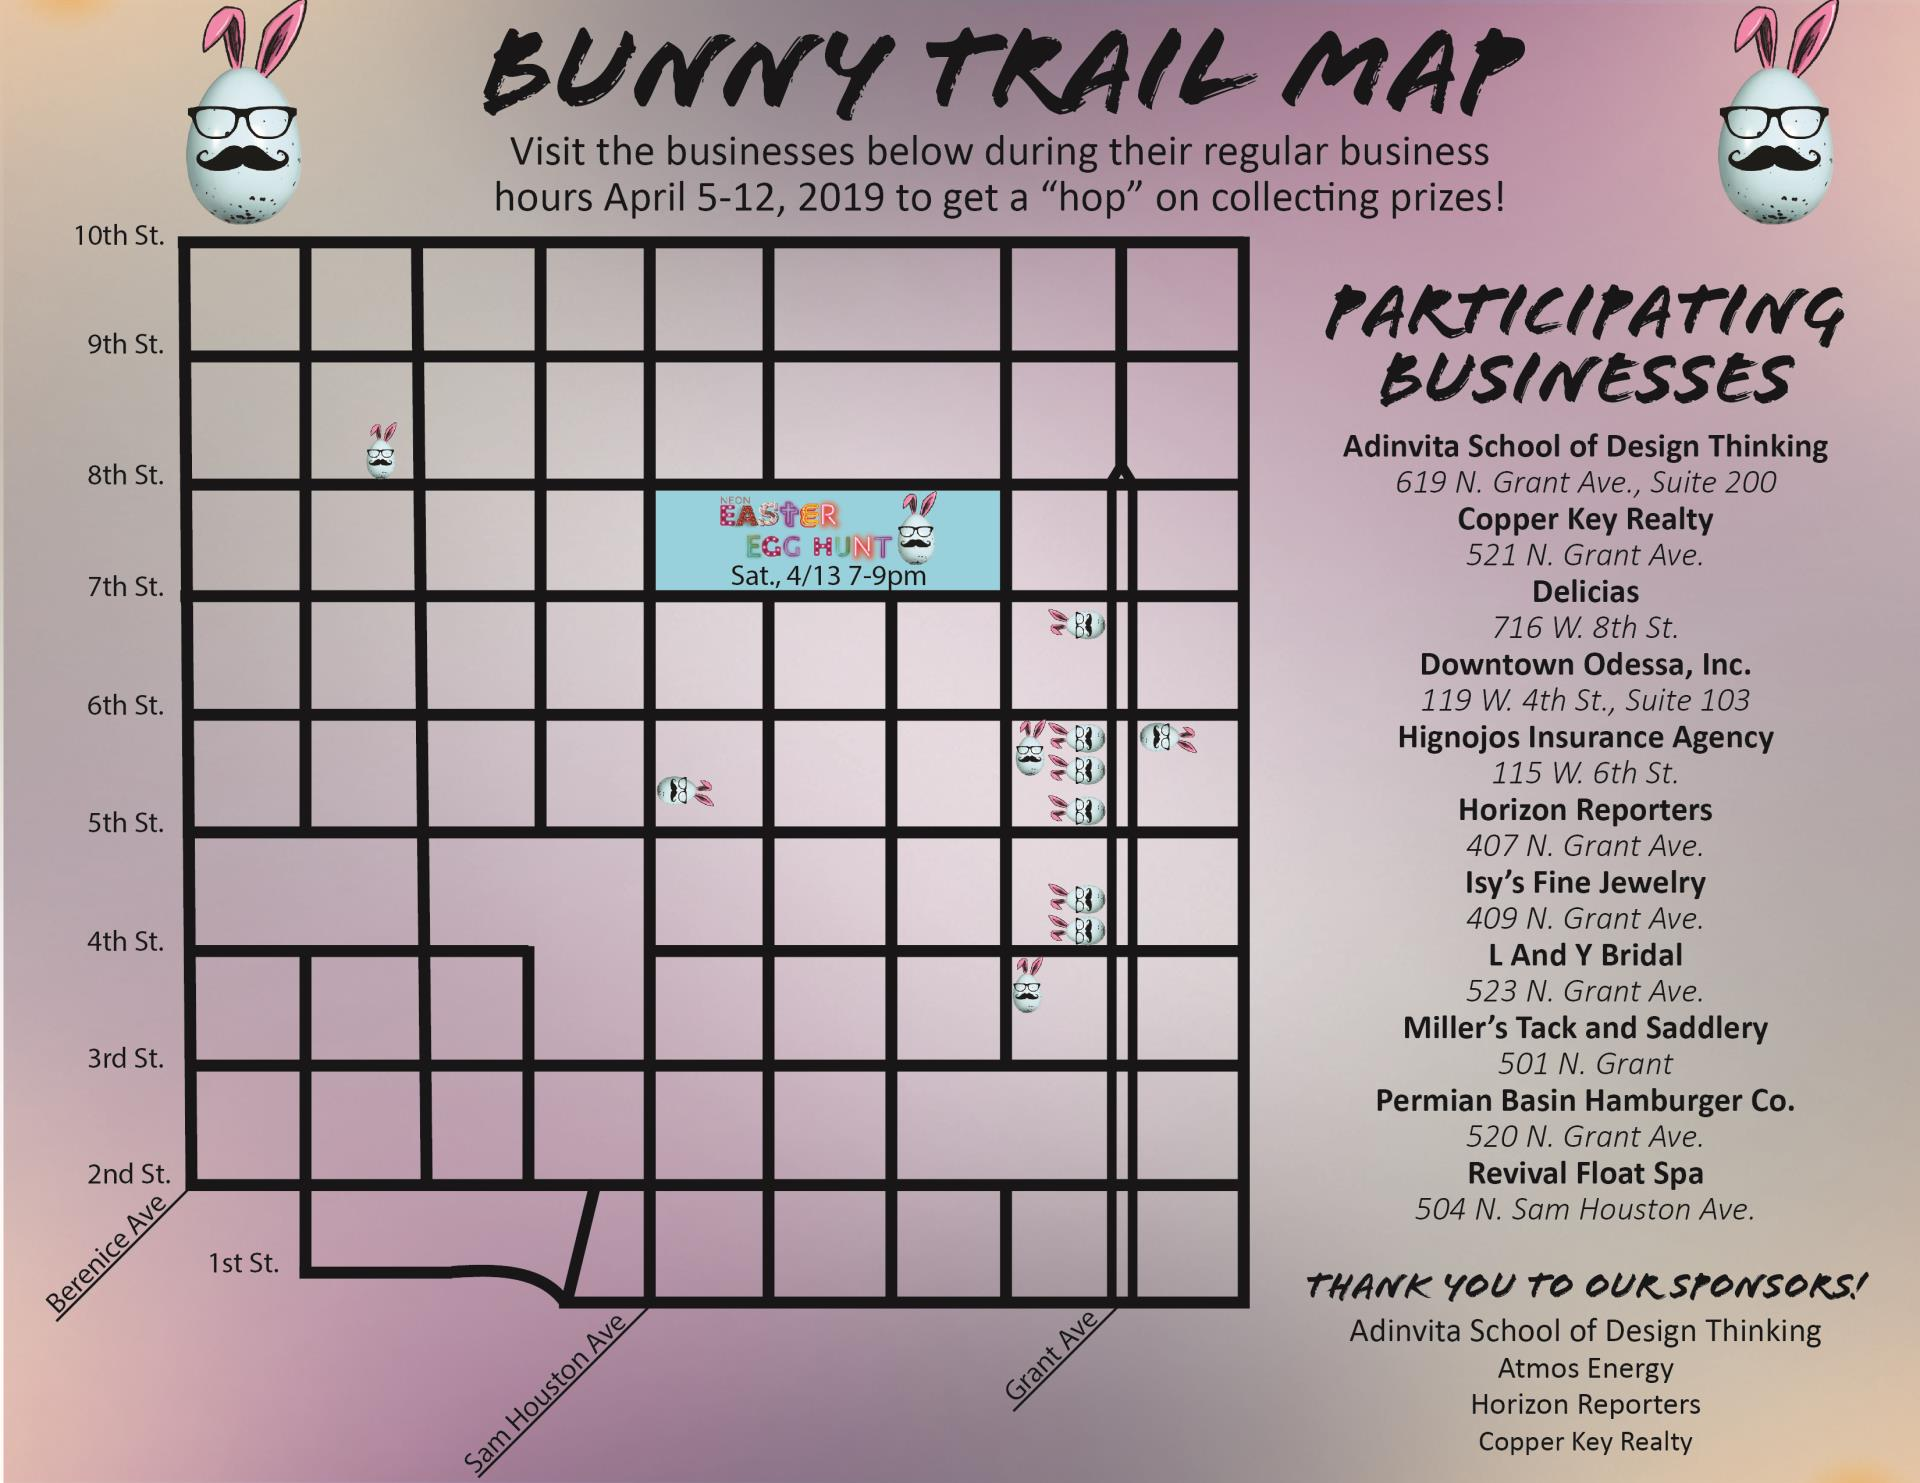 Bunny Trail Map